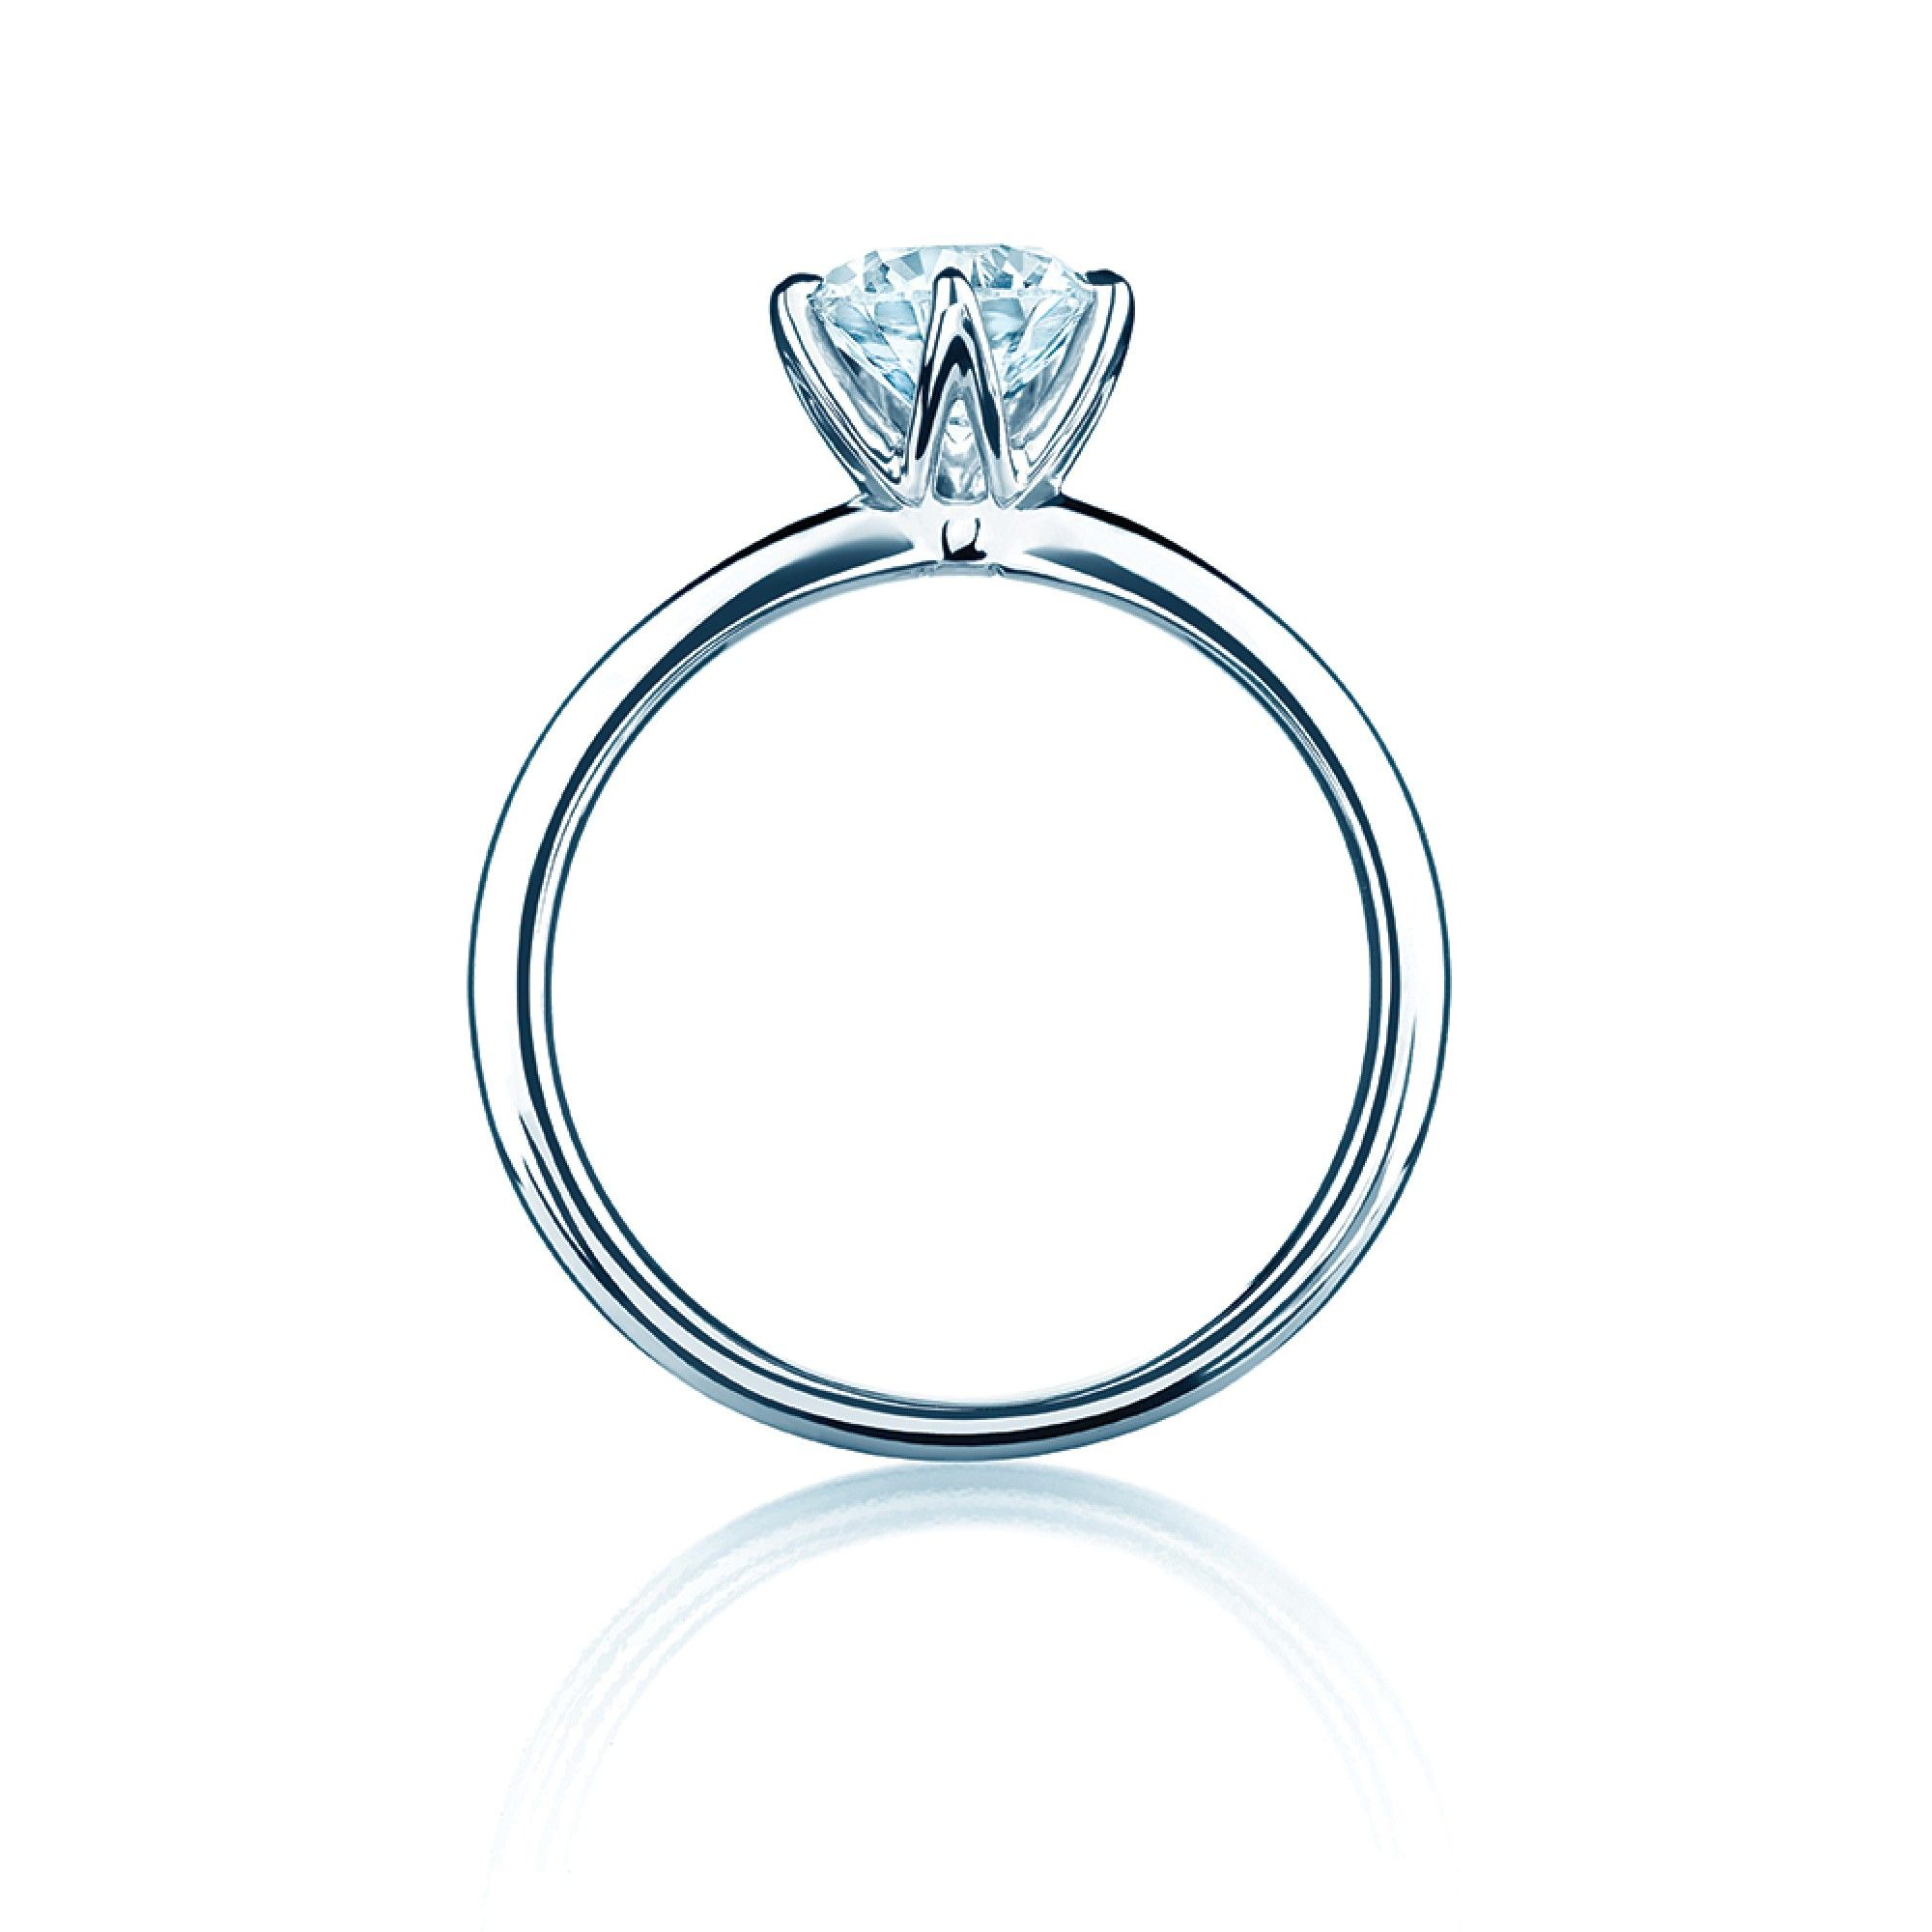 Birks North Star Platinum Diamond Engagement Ring Dream Engagement Rings